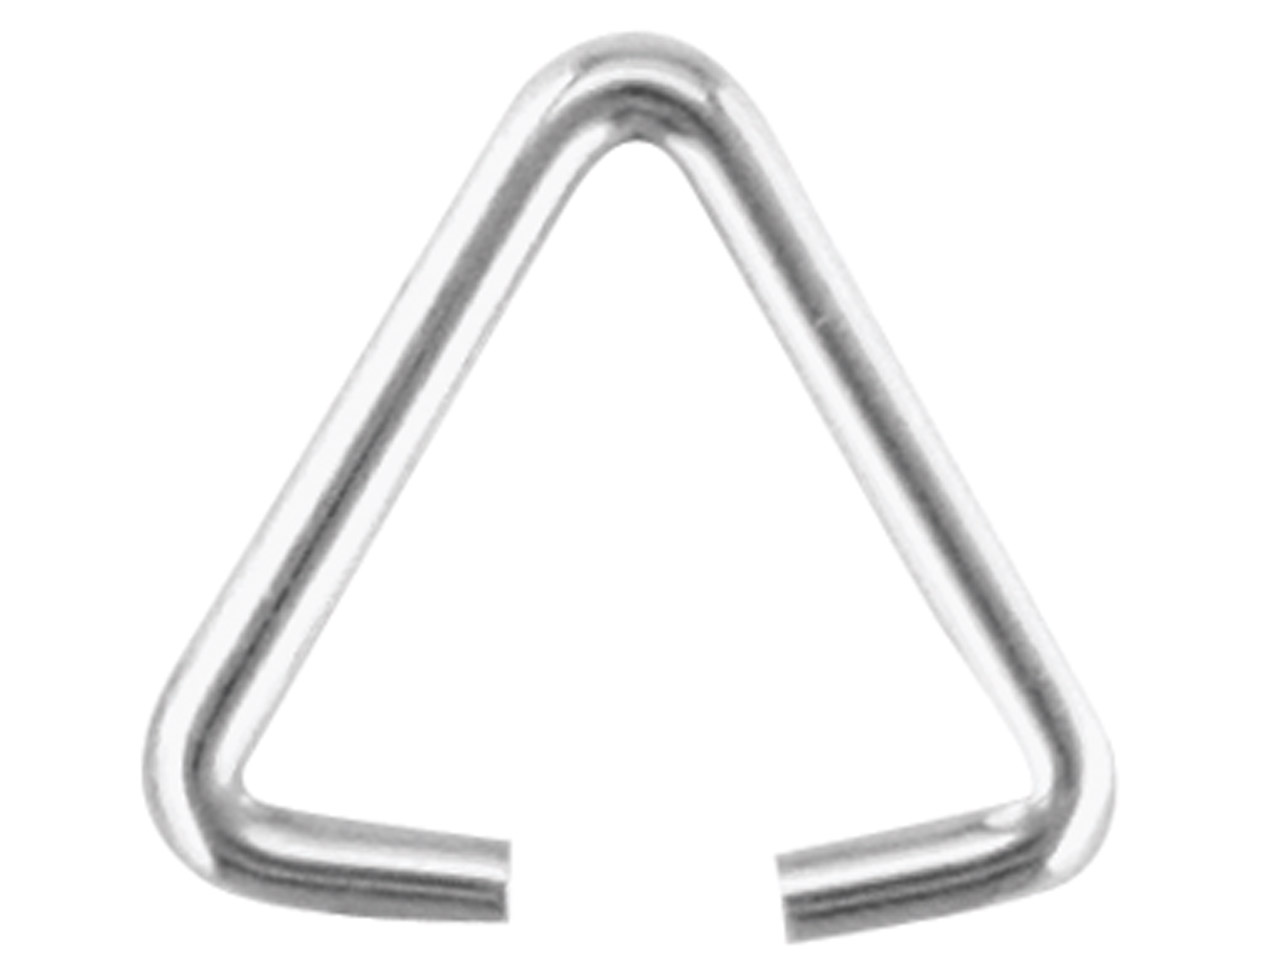 Sterling Silver Triangular Wire Bail Pack of 10 - cooksongold.com